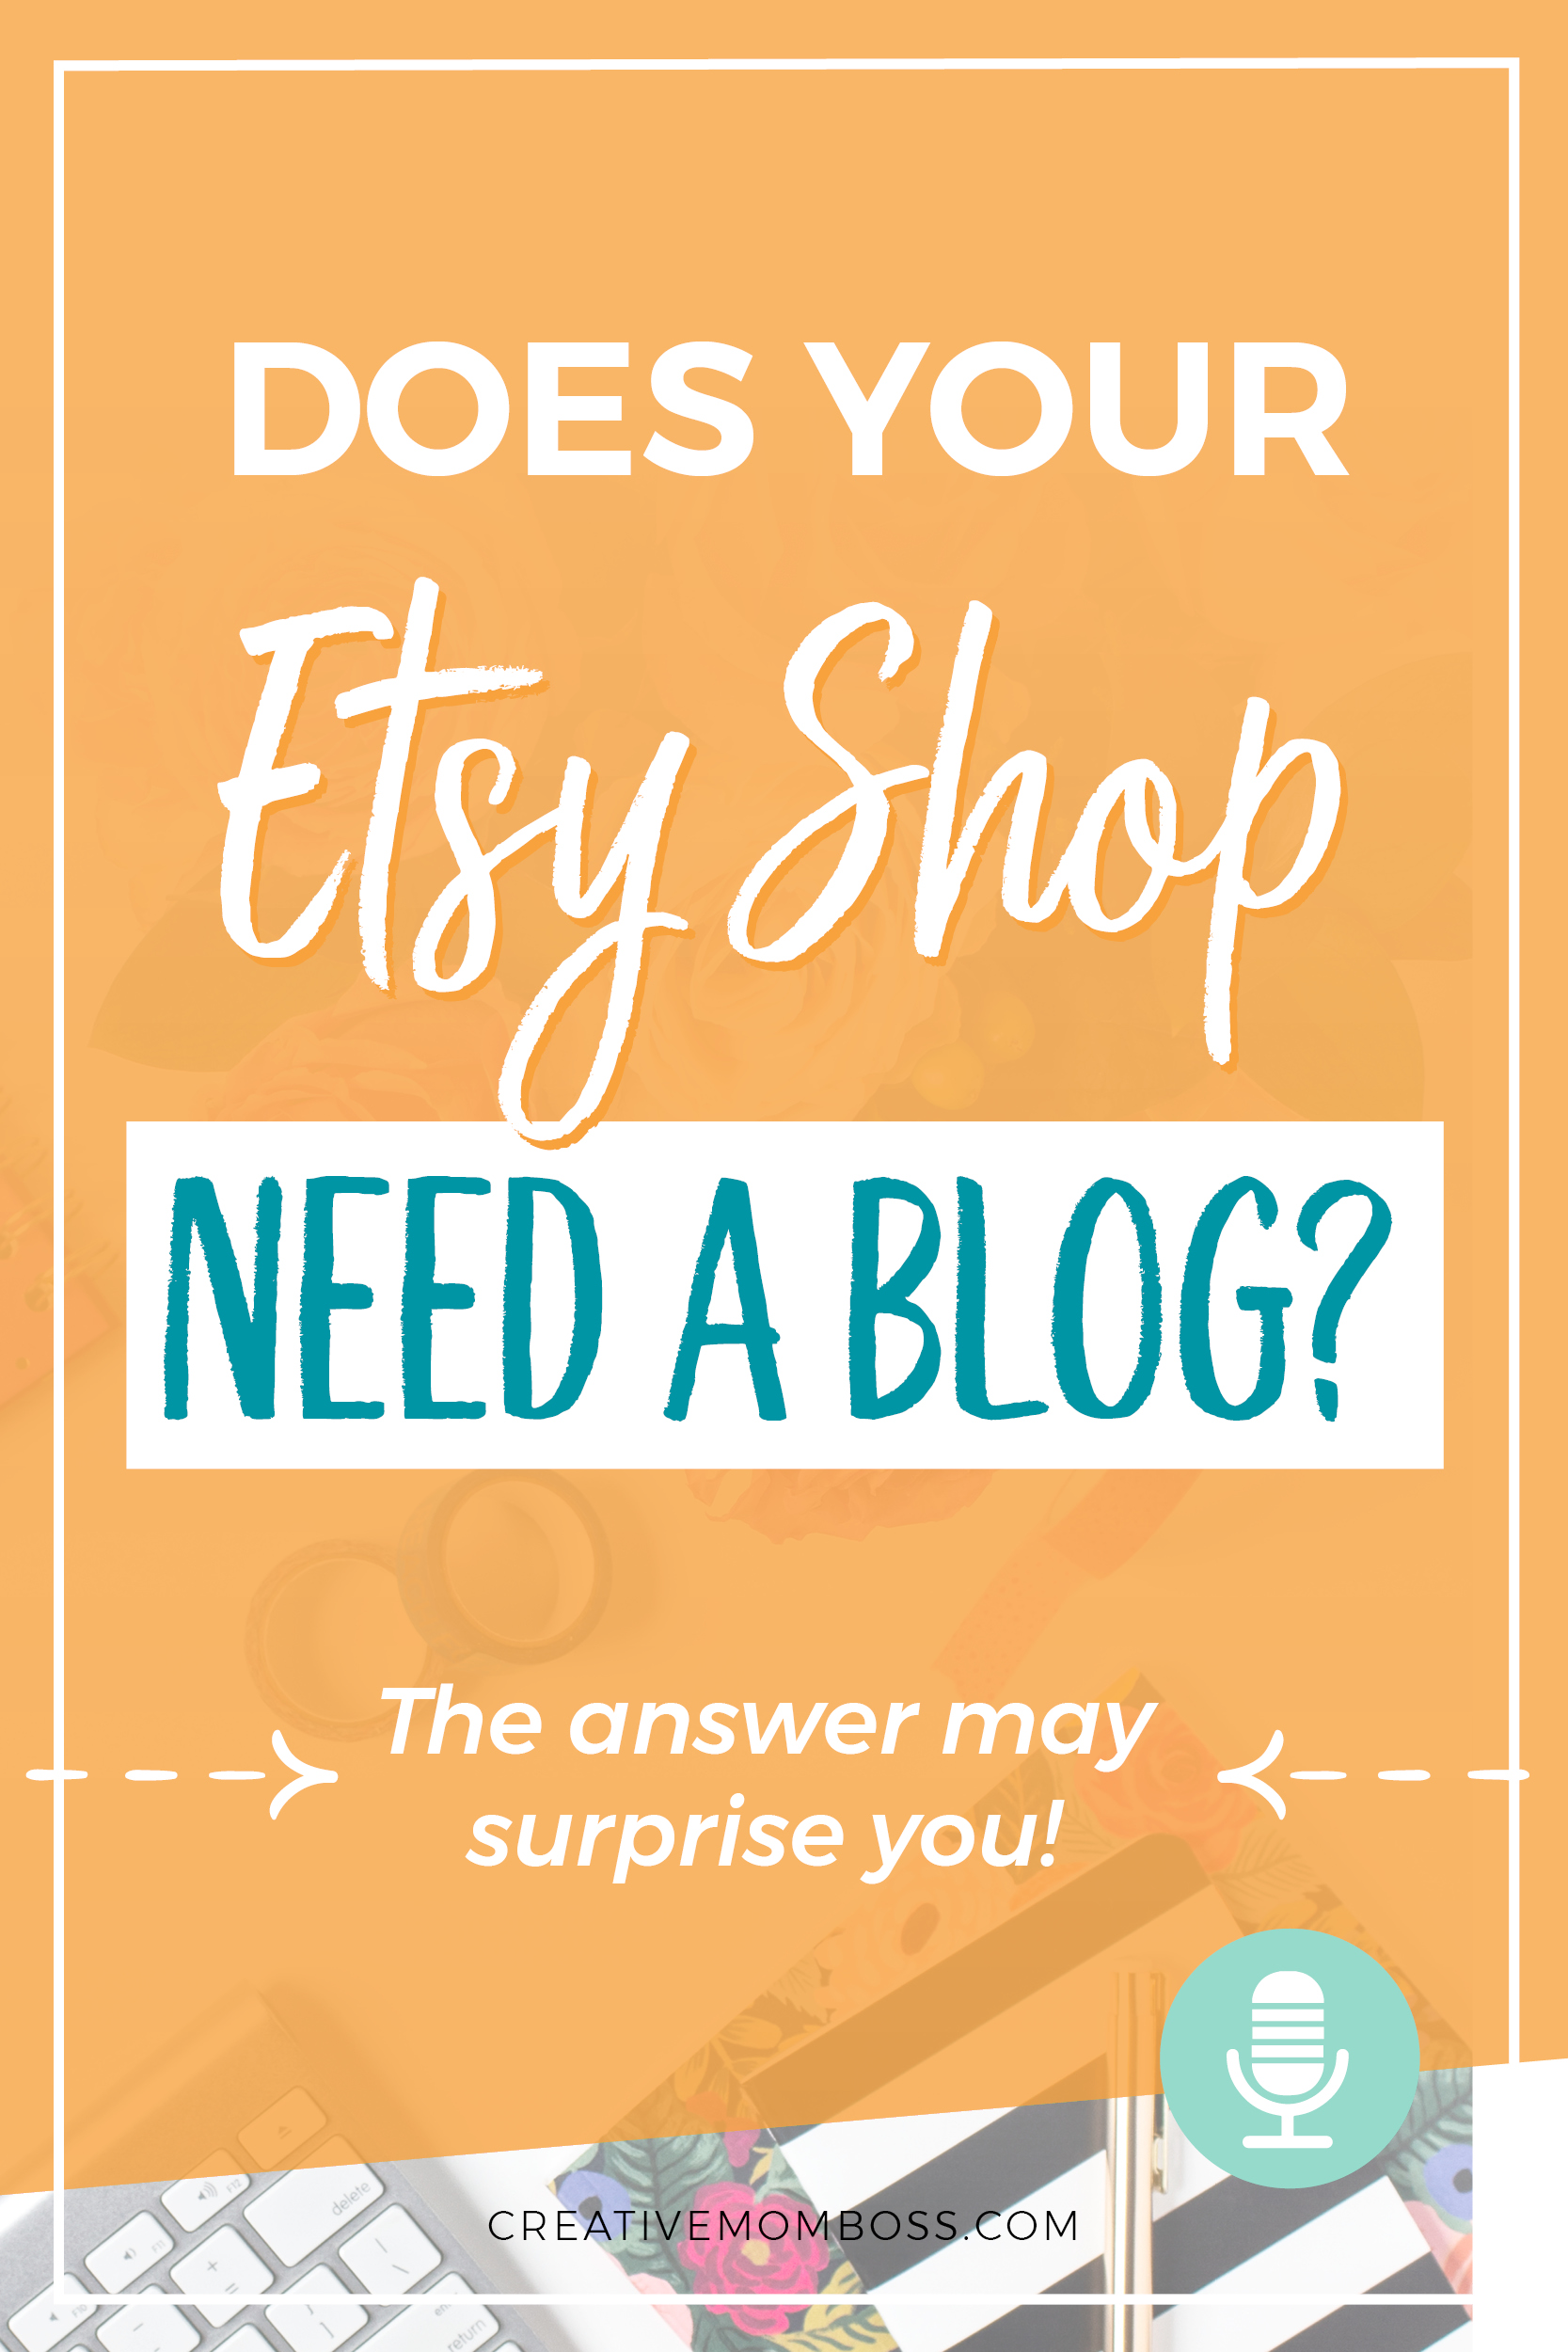 Does your Etsy Shop need a blog? The answer (NO!) may surprise you